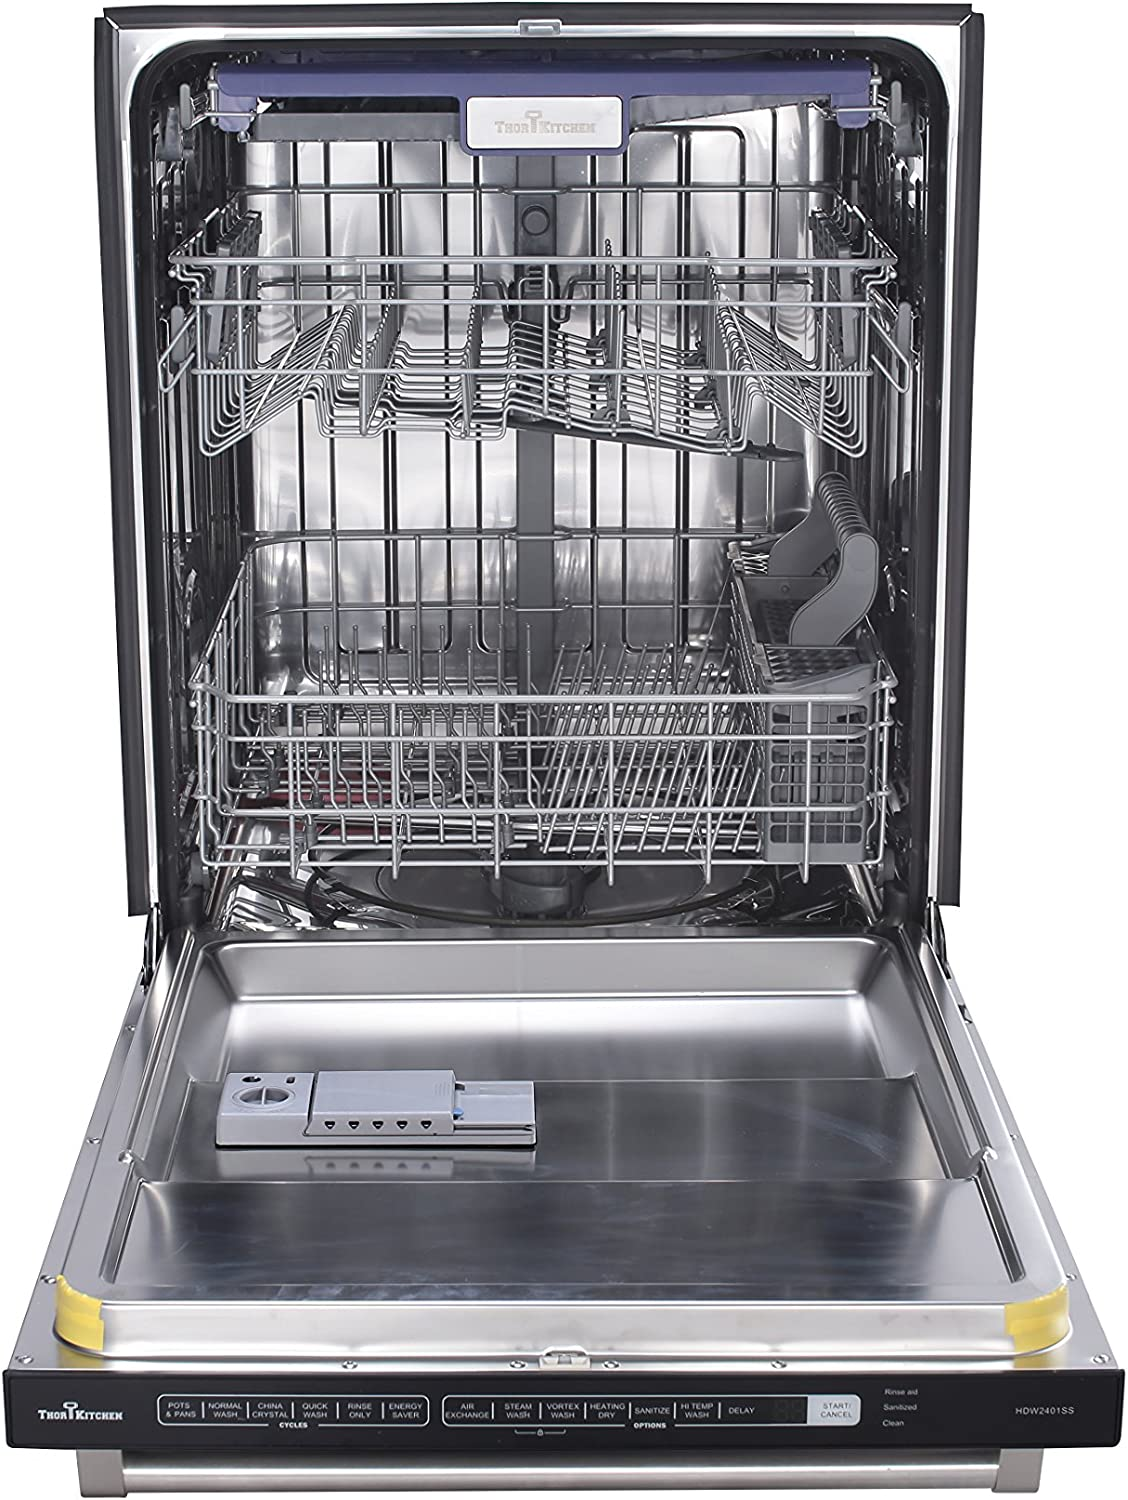 """Thorkitchen HDW2401SS 24"""" Built-In Dishwasher review"""